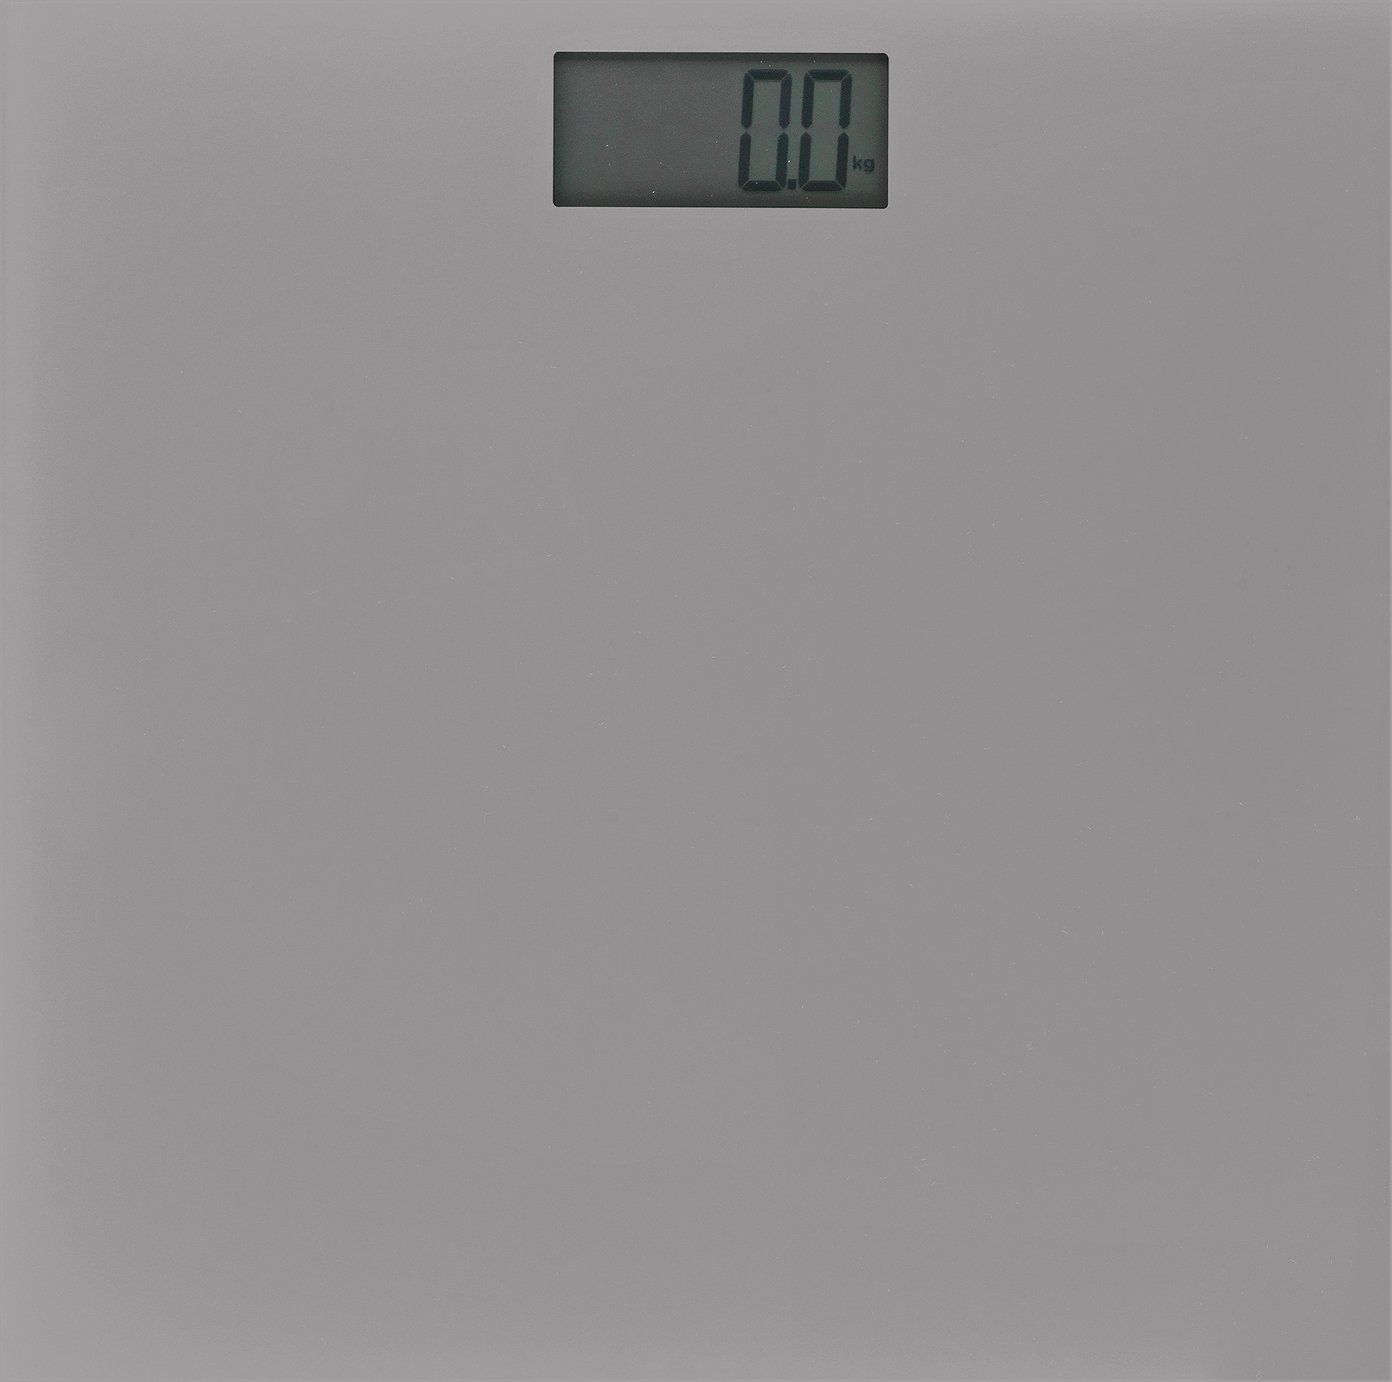 ColourMatch Electronic Scales - Flint Grey